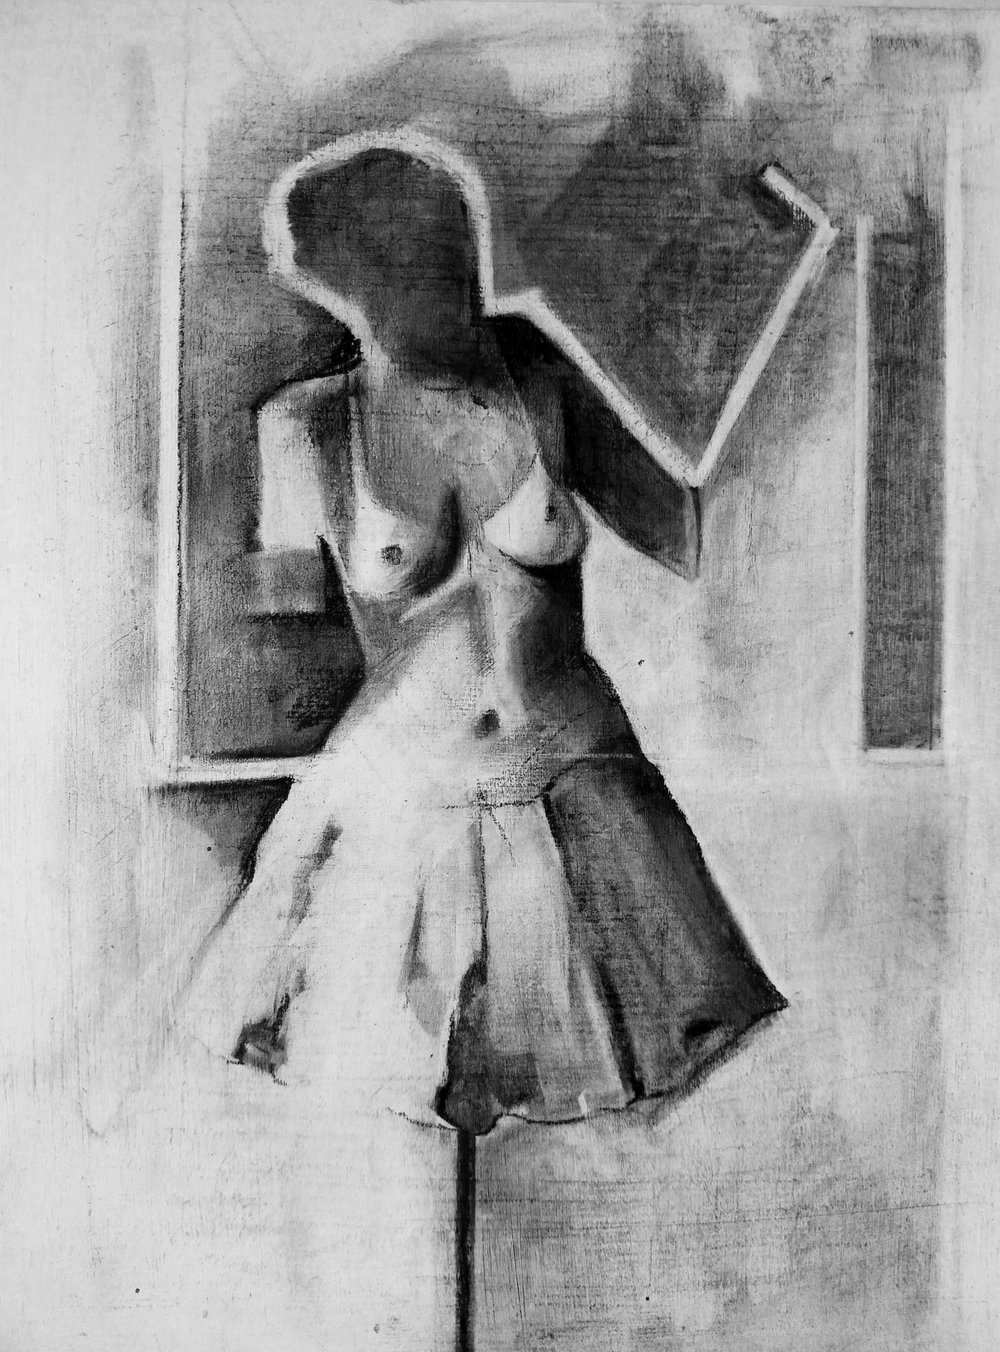 Nude Study 1    Charcoal on Gessoed Wood Panel  2016 9in x 7in